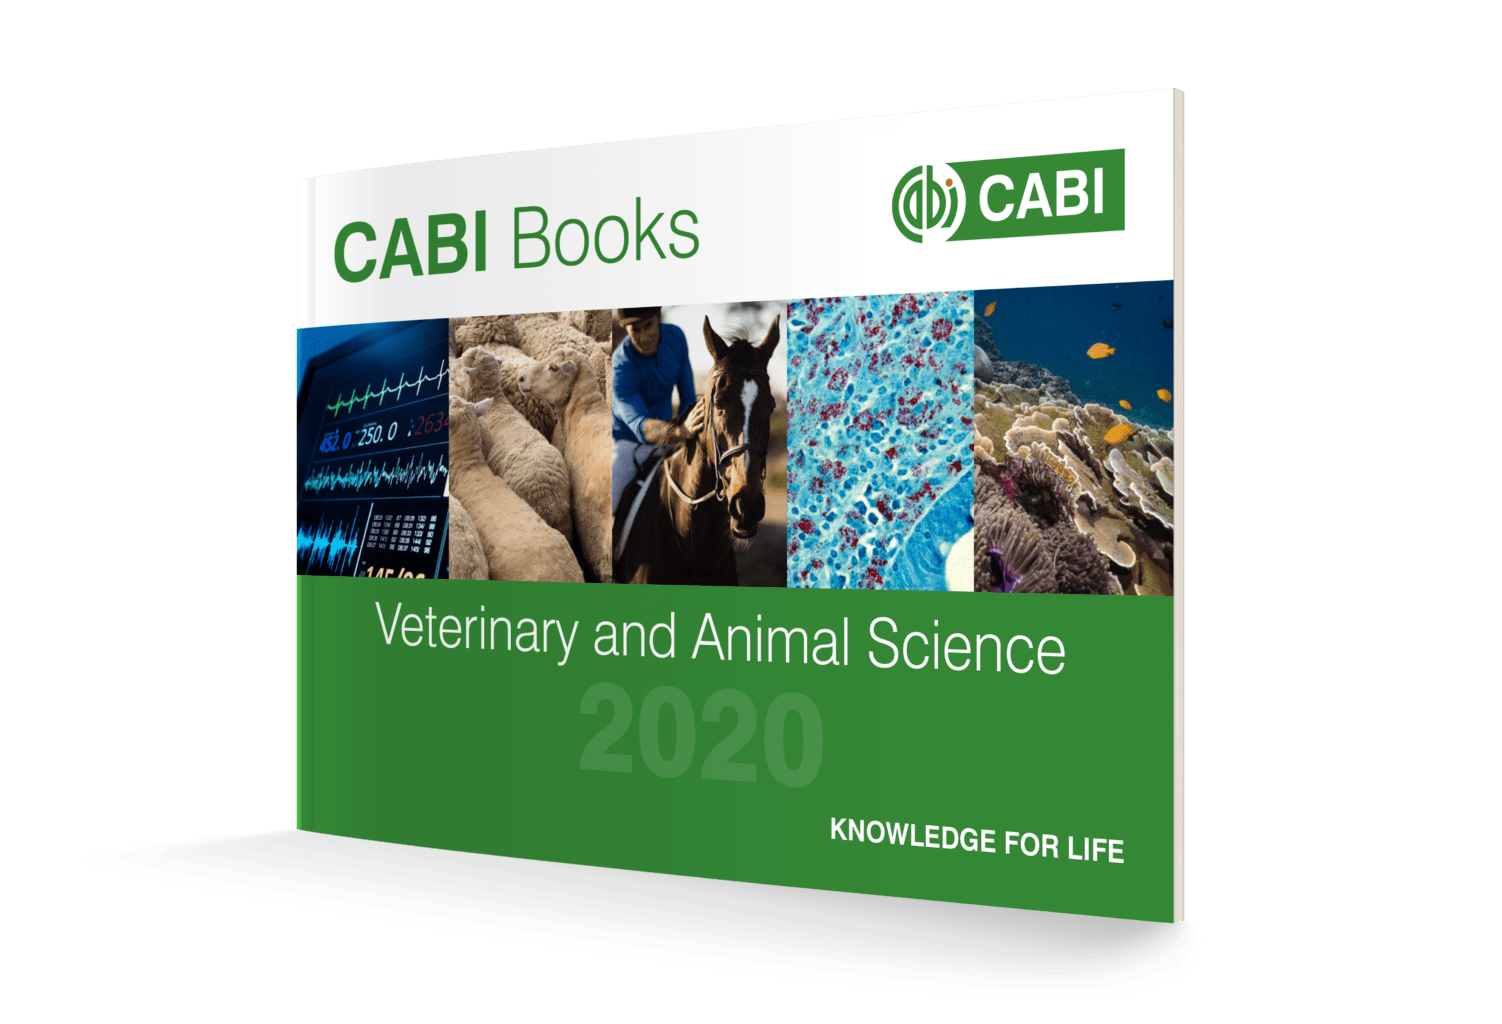 Animal and Vet Science 2020 catalogue cover